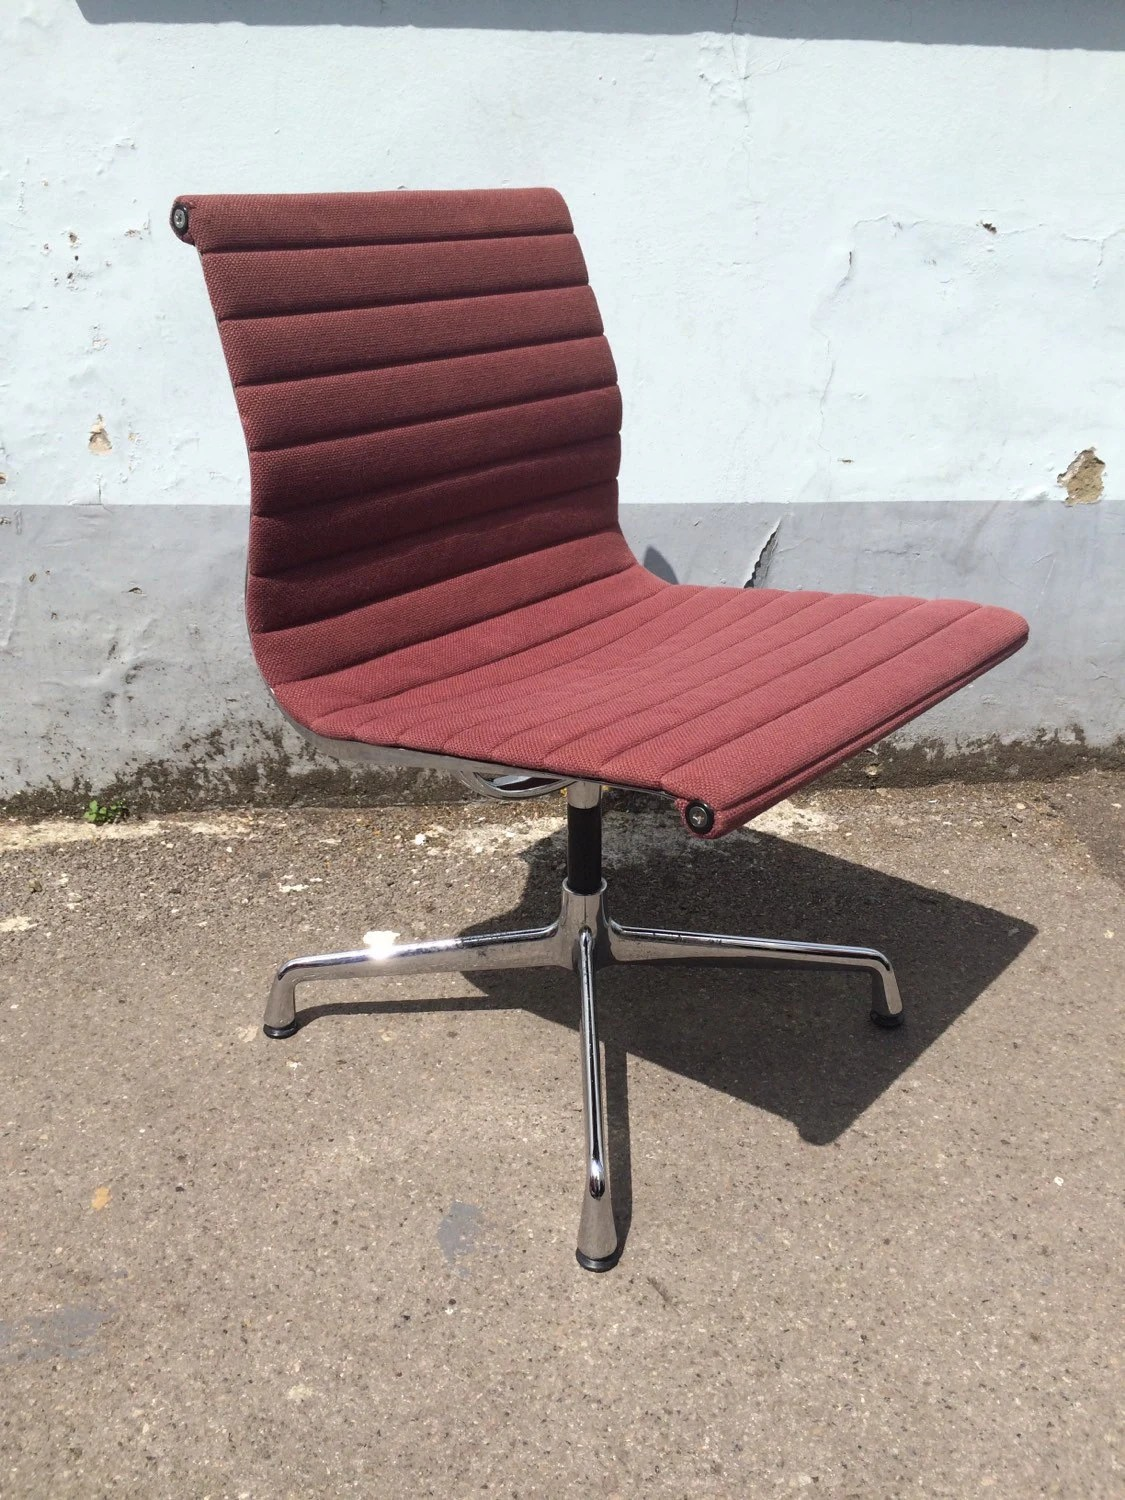 Sold 1980s authentic original vitra produced charles for Vitra alu chair replica